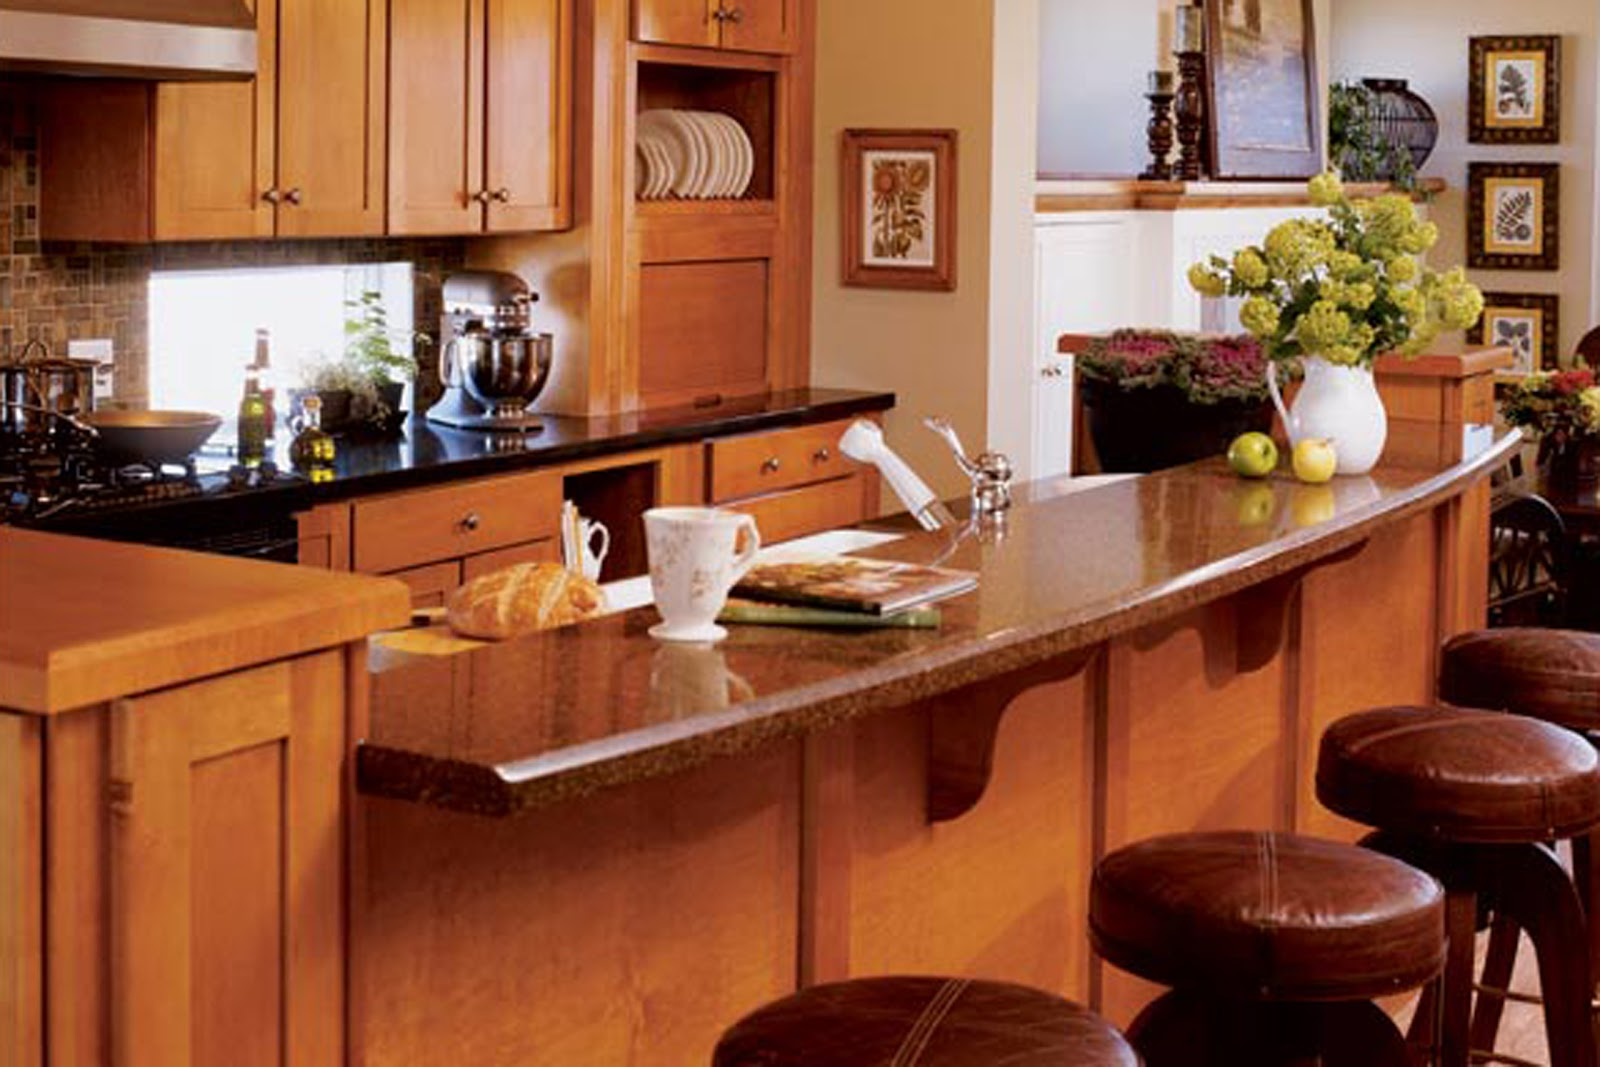 Simply elegant home designs blog home design ideas 3 for How to decorate a kitchen counter